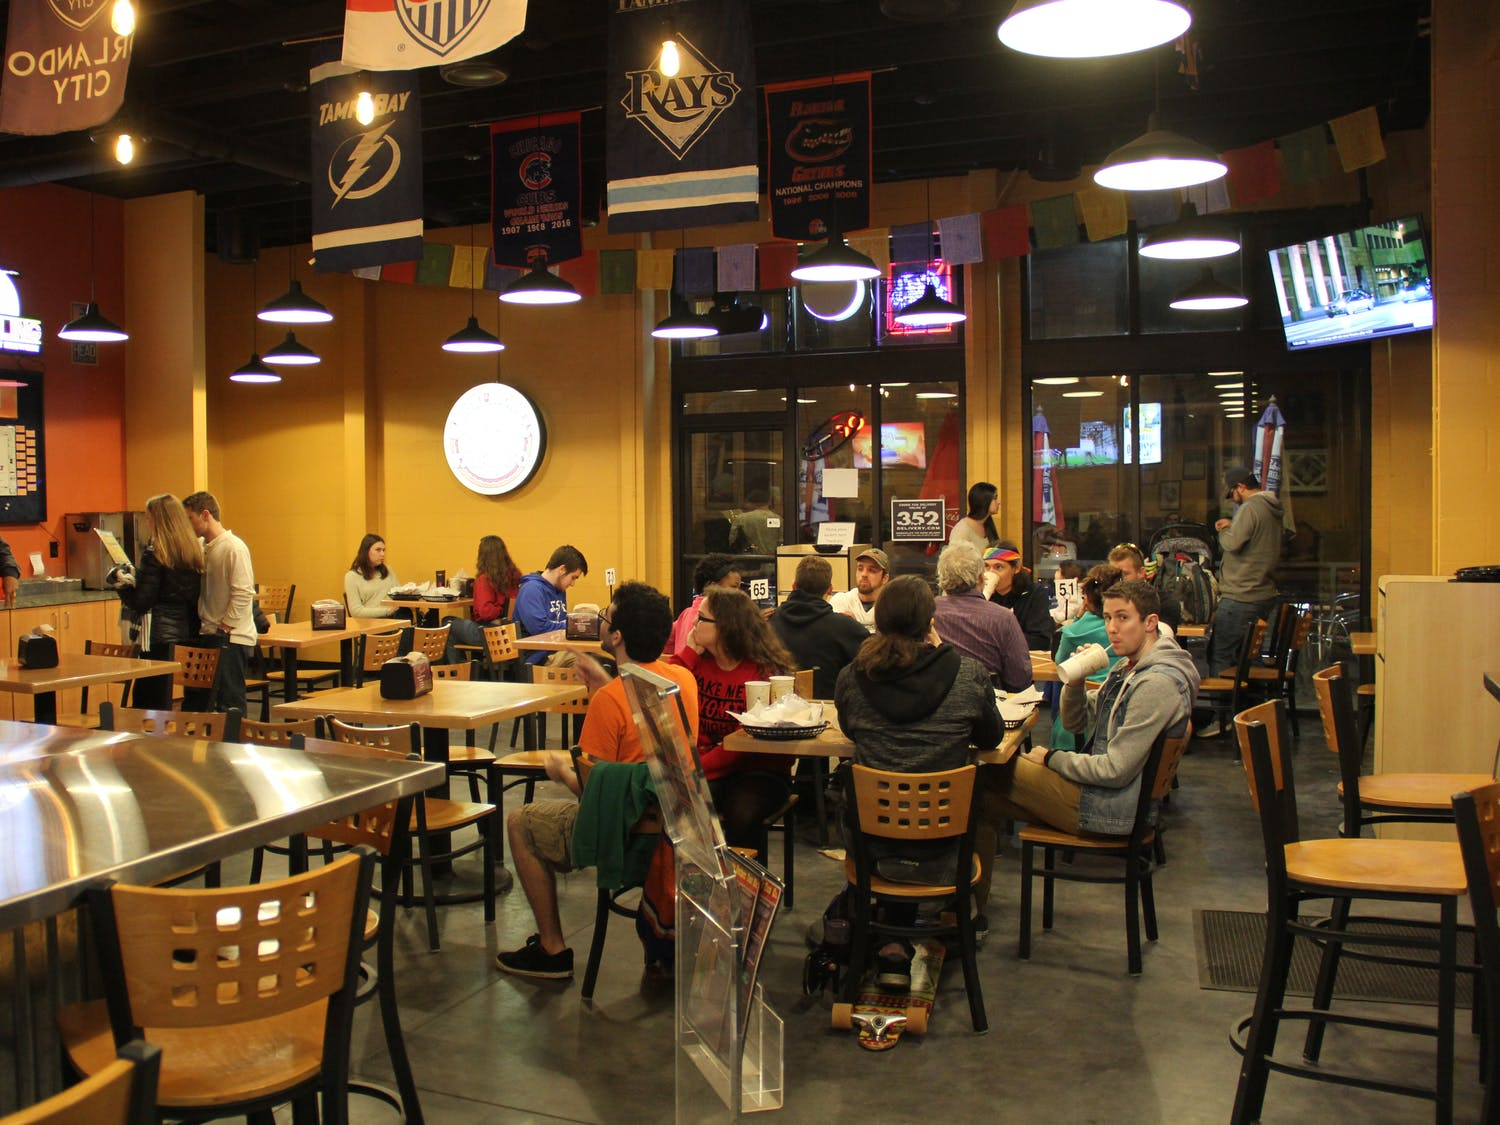 About 25 customers dine at Burrito Bros. Taco Co., located at 1402 W. University Ave., on Sunday night. The restaurant has been serving the Gainesville community since 1976.